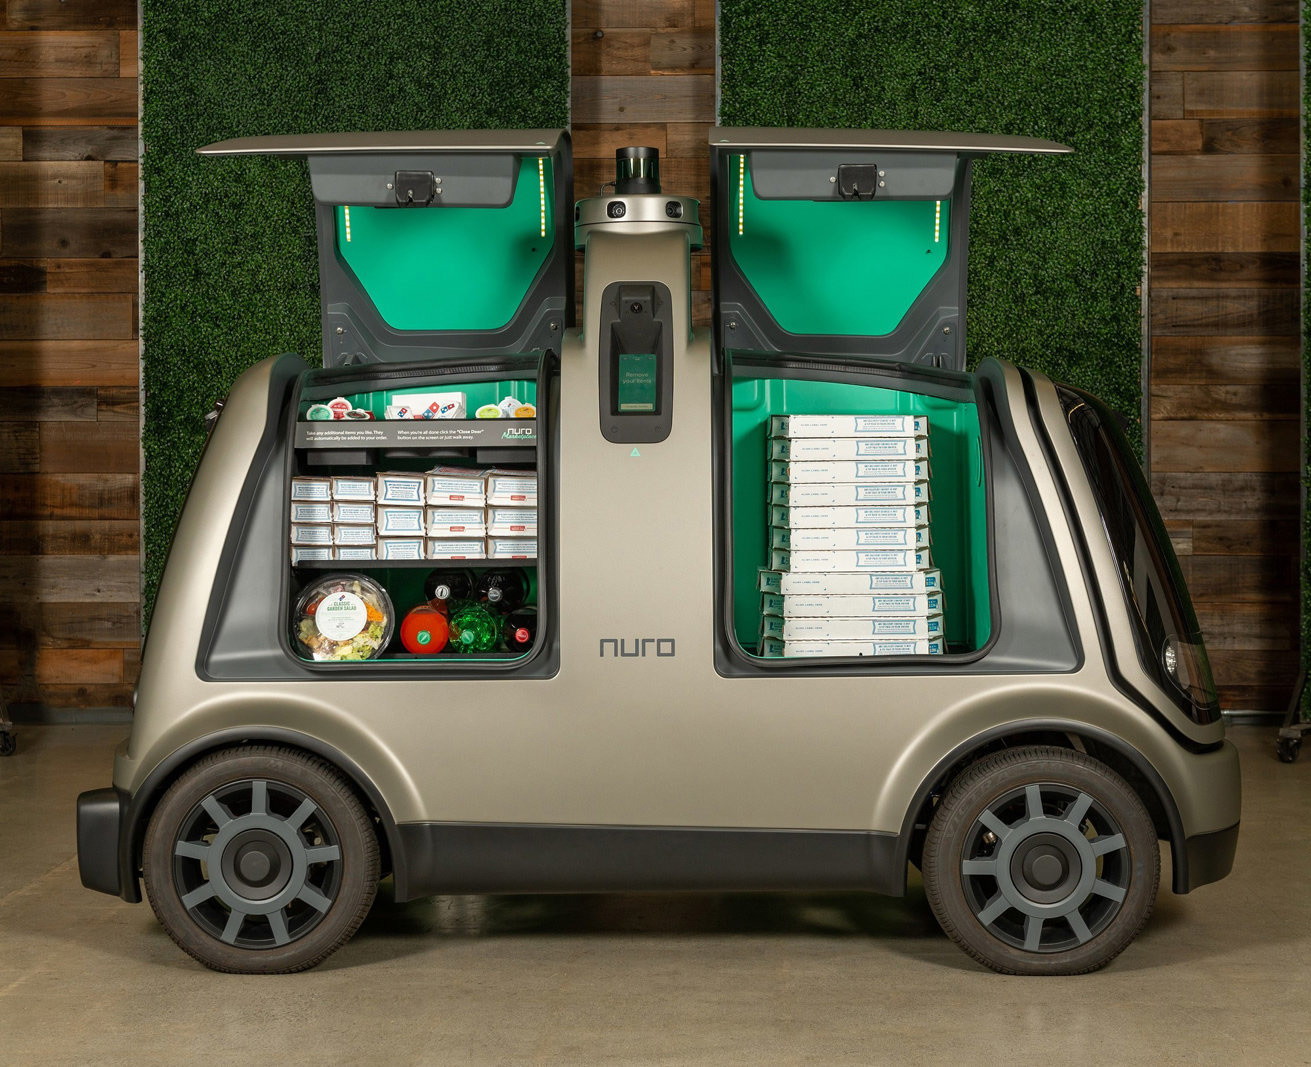 Domino's Nuro R2 Self-Driving Vehicles